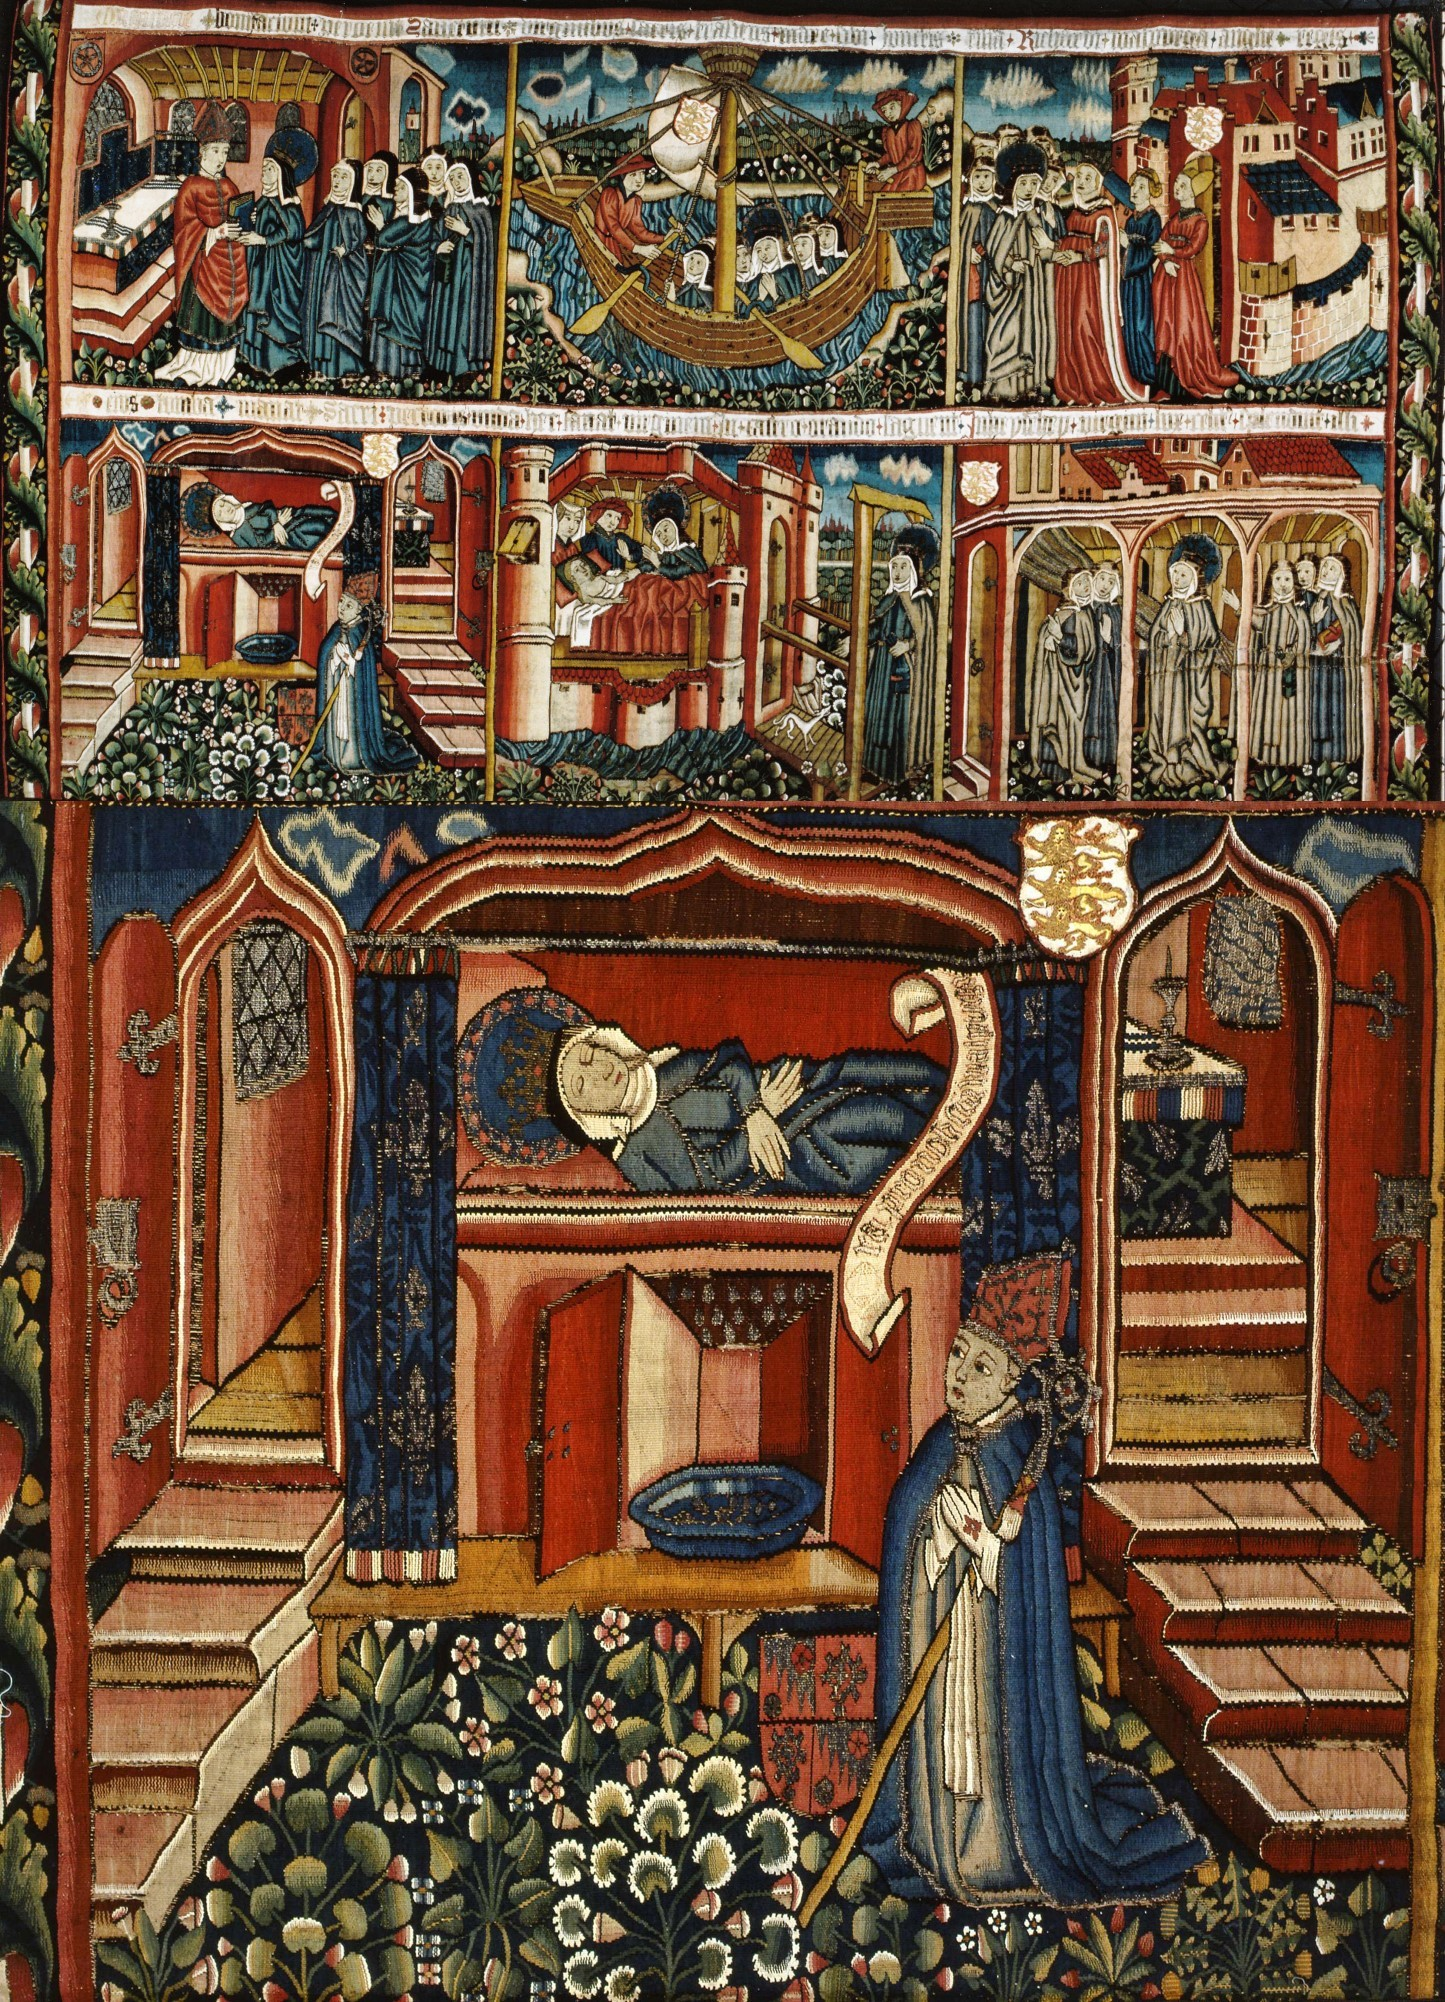 Nuns Textiles And Reform In The Middle Ages Mittelalter